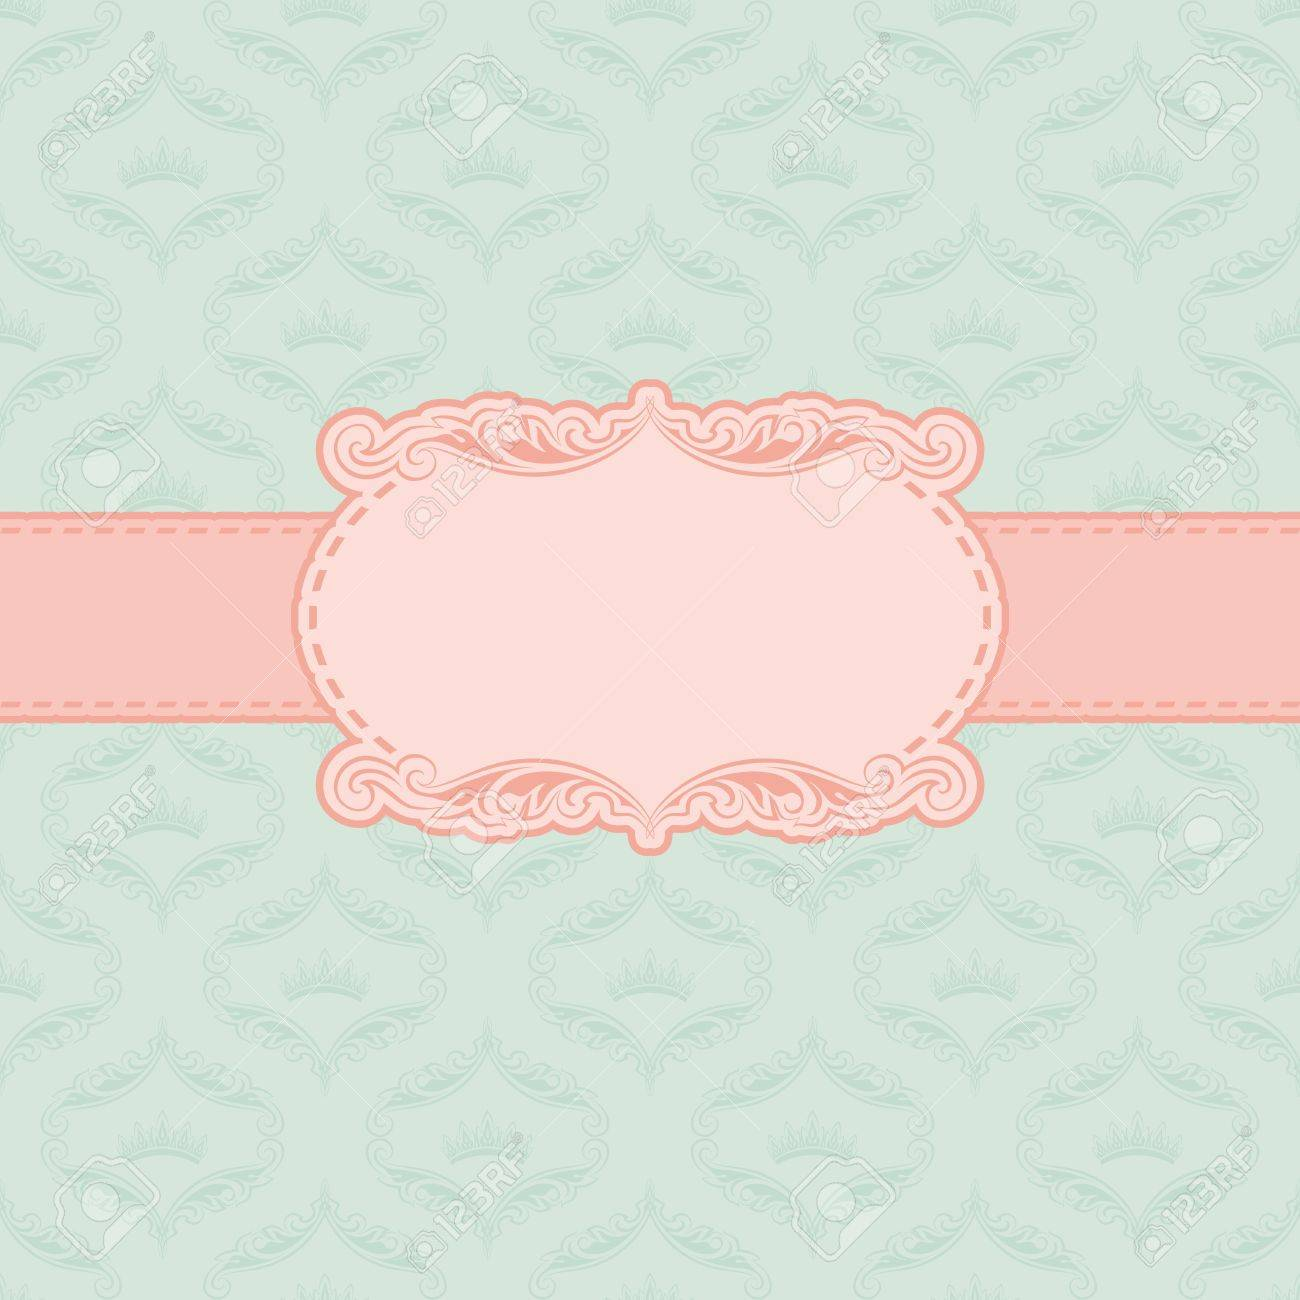 Template frame design for greeting card Stock Vector - 12776612